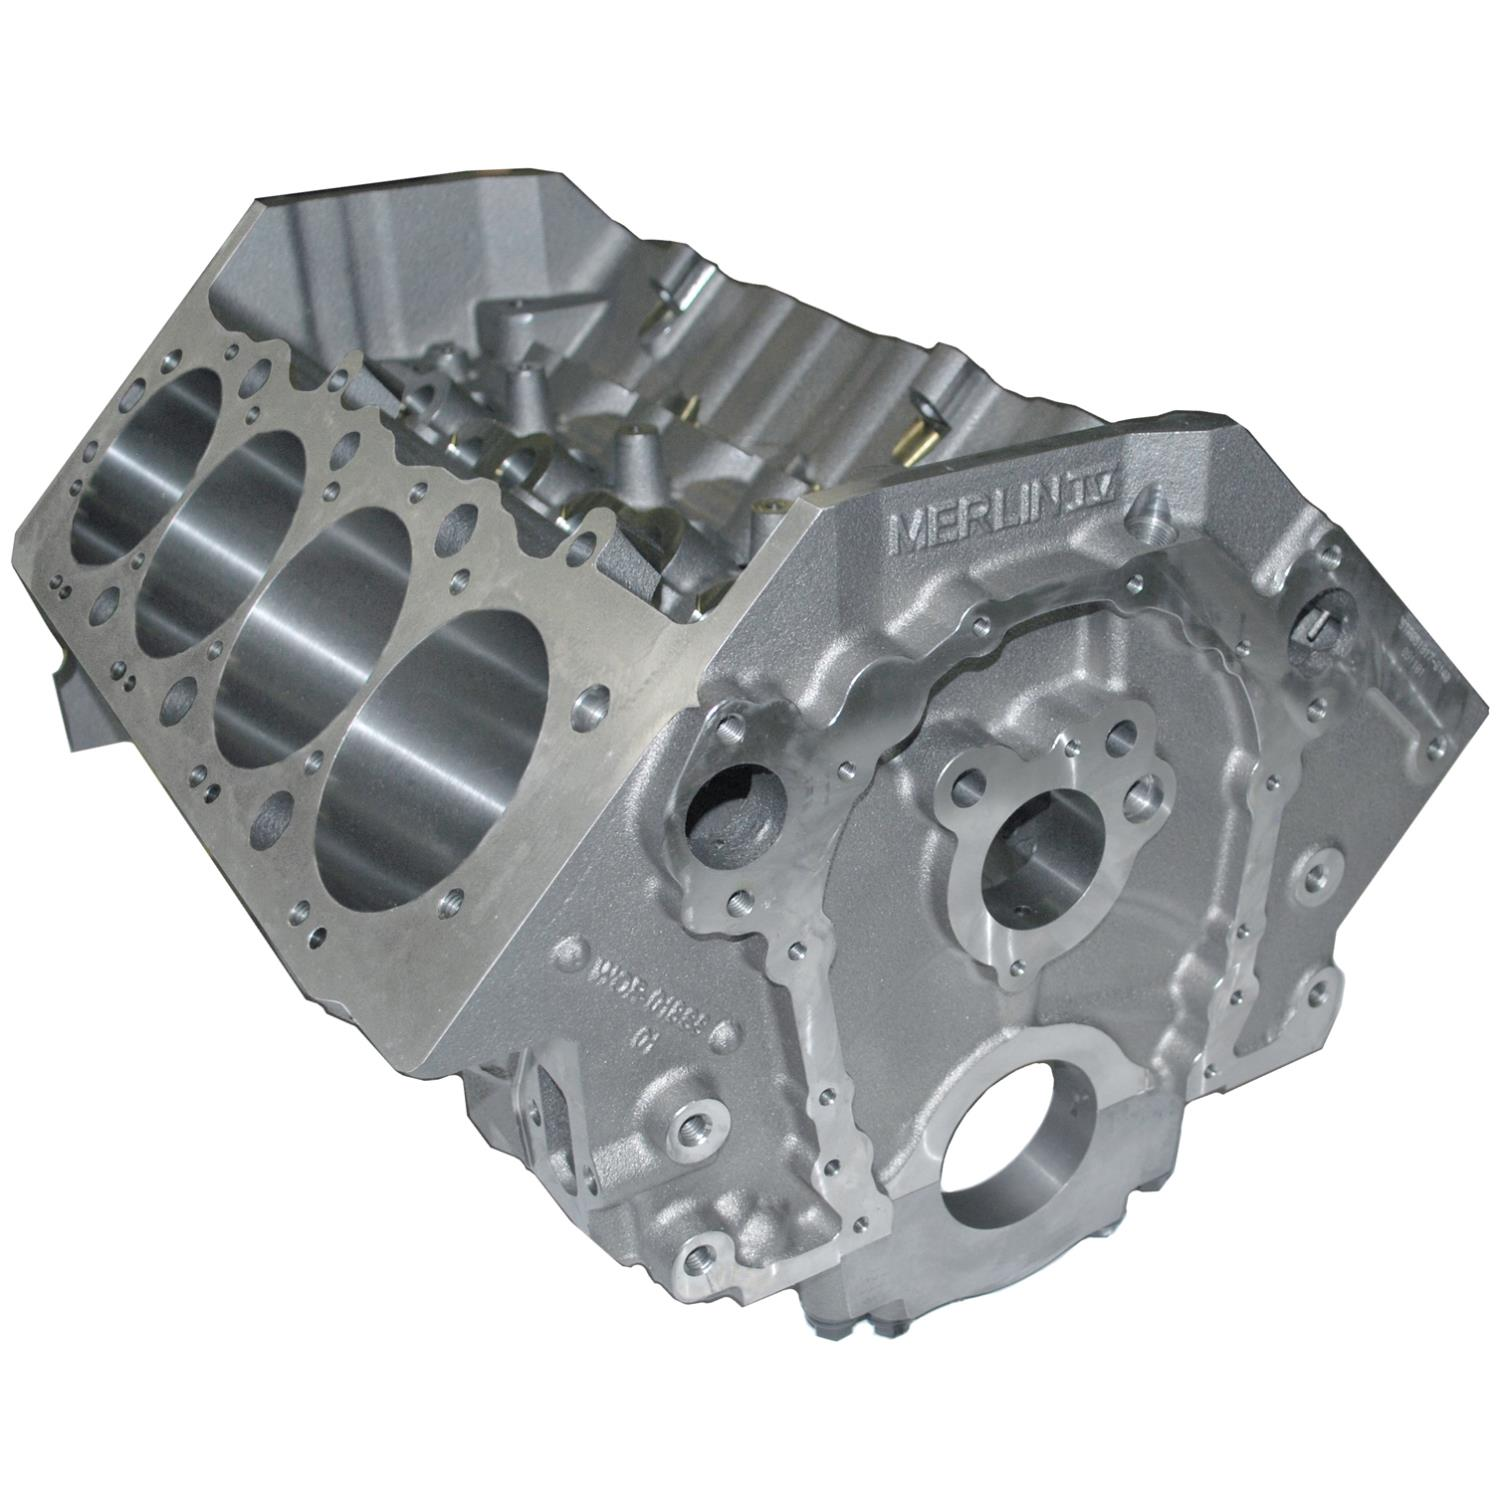 World Products Merlin IV Big Block Chevy Engine Block 4 495 Bore 10 200  Tall Deck Cast Iron